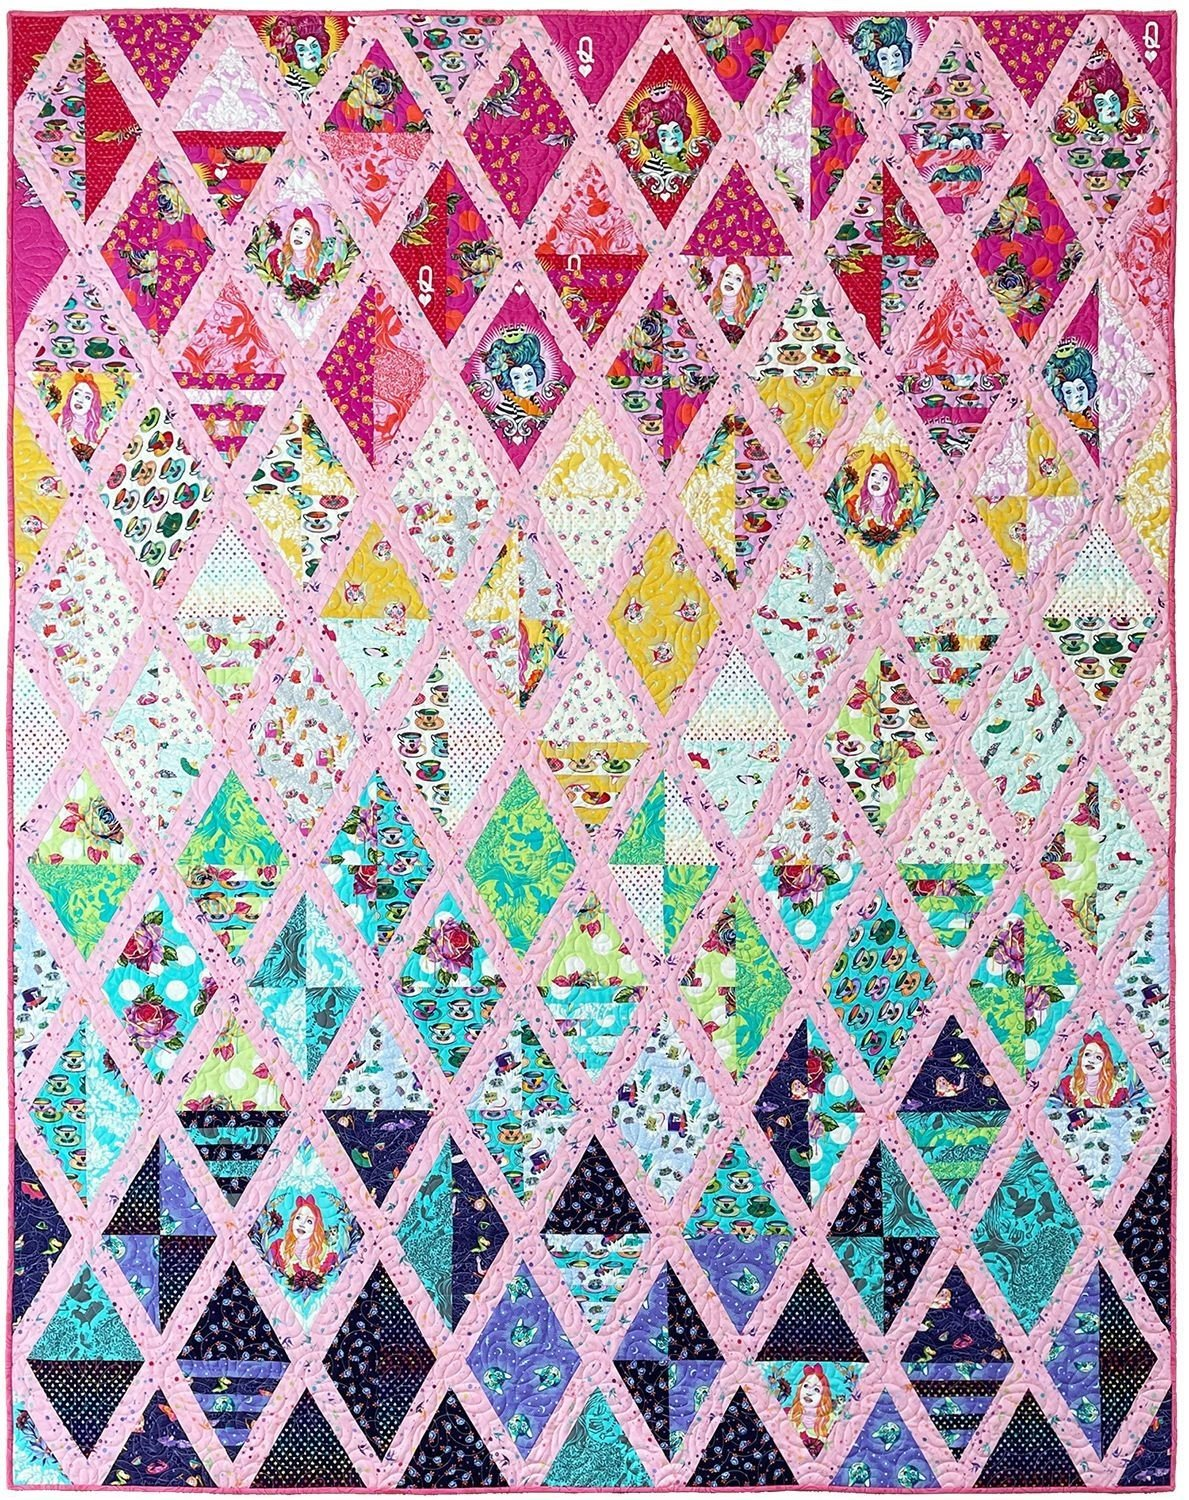 Set Sail Quilt Kit Made with Curiouser & Curiouser by Tula Pink - Twin Size - 69 x 90